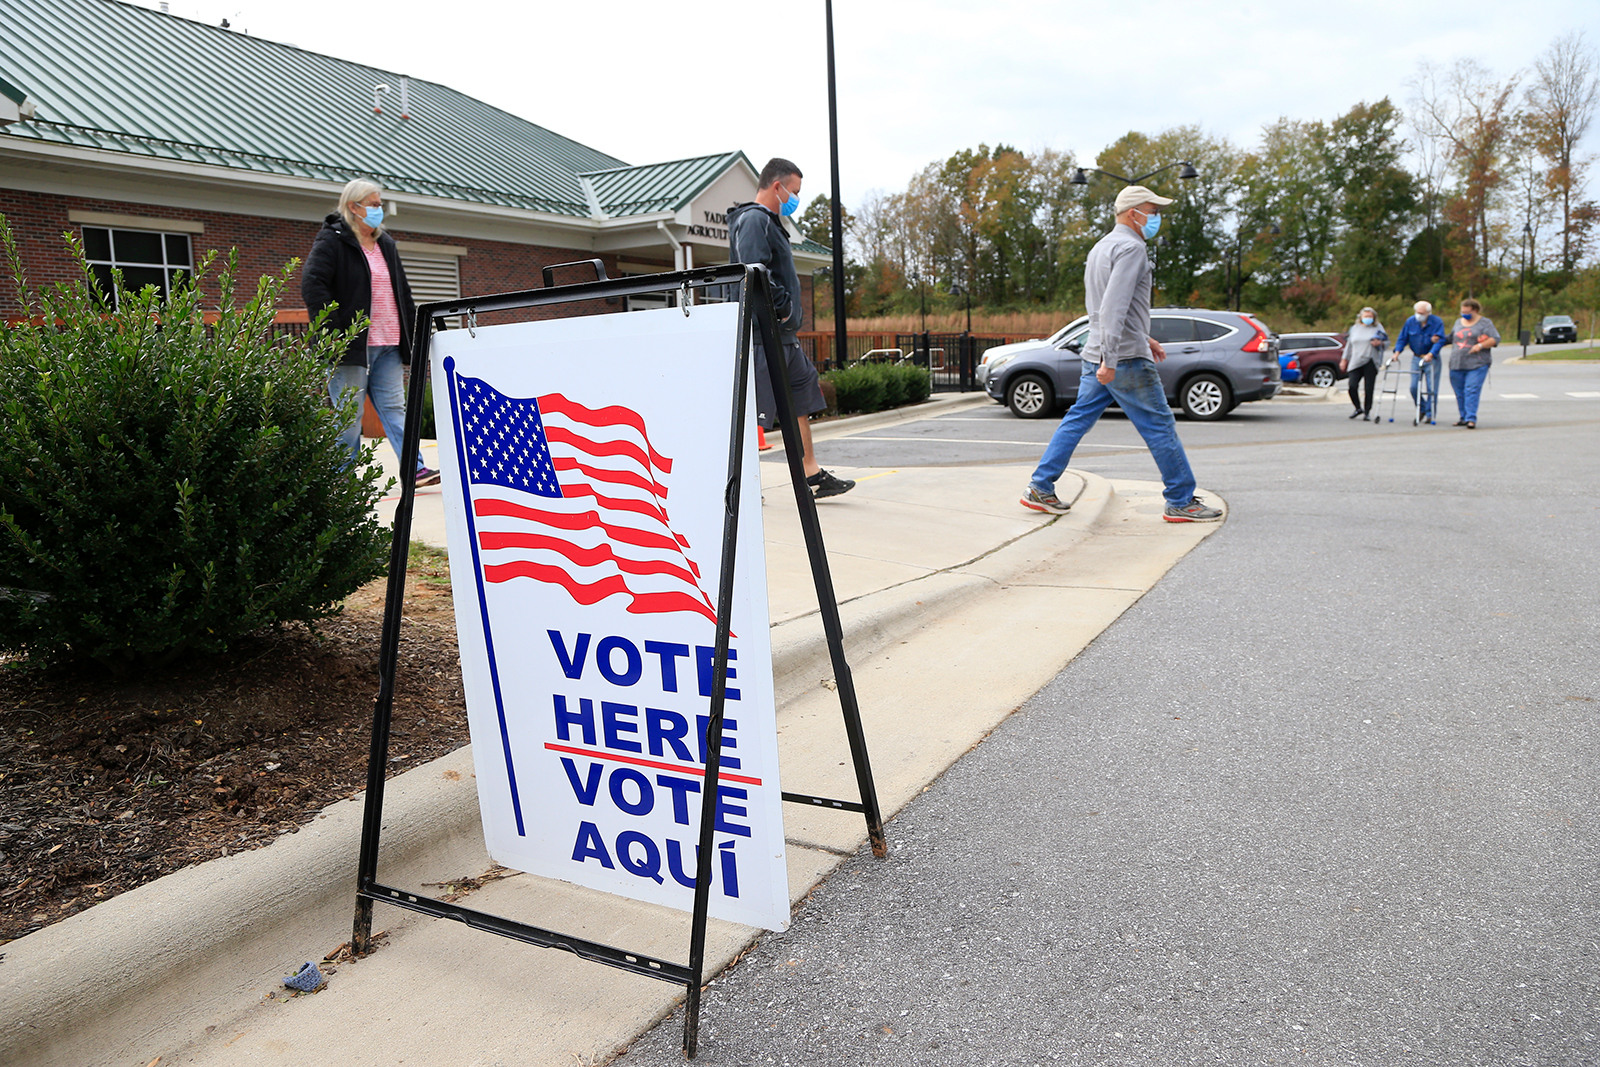 Voters arrive and depart a polling place on October 31, in Yadkinville, North Carolina.